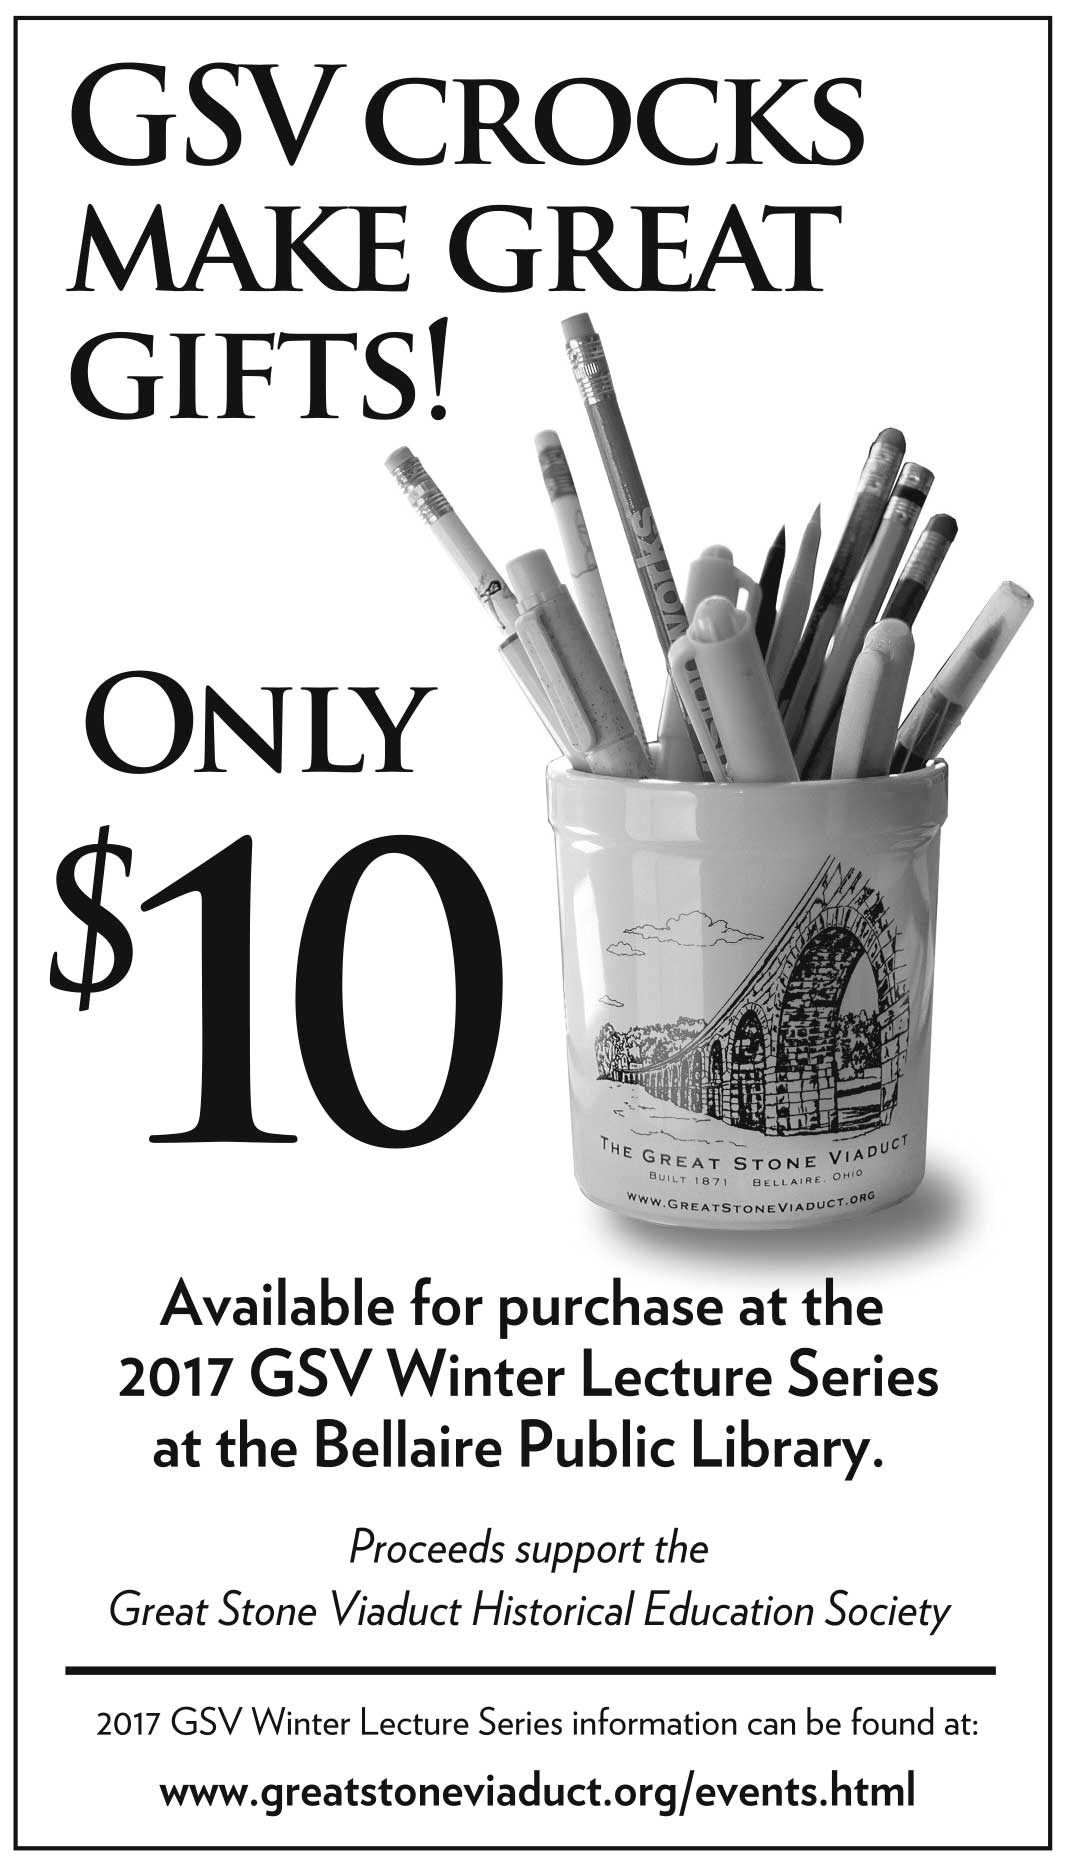 GSV Crocks make great gifts